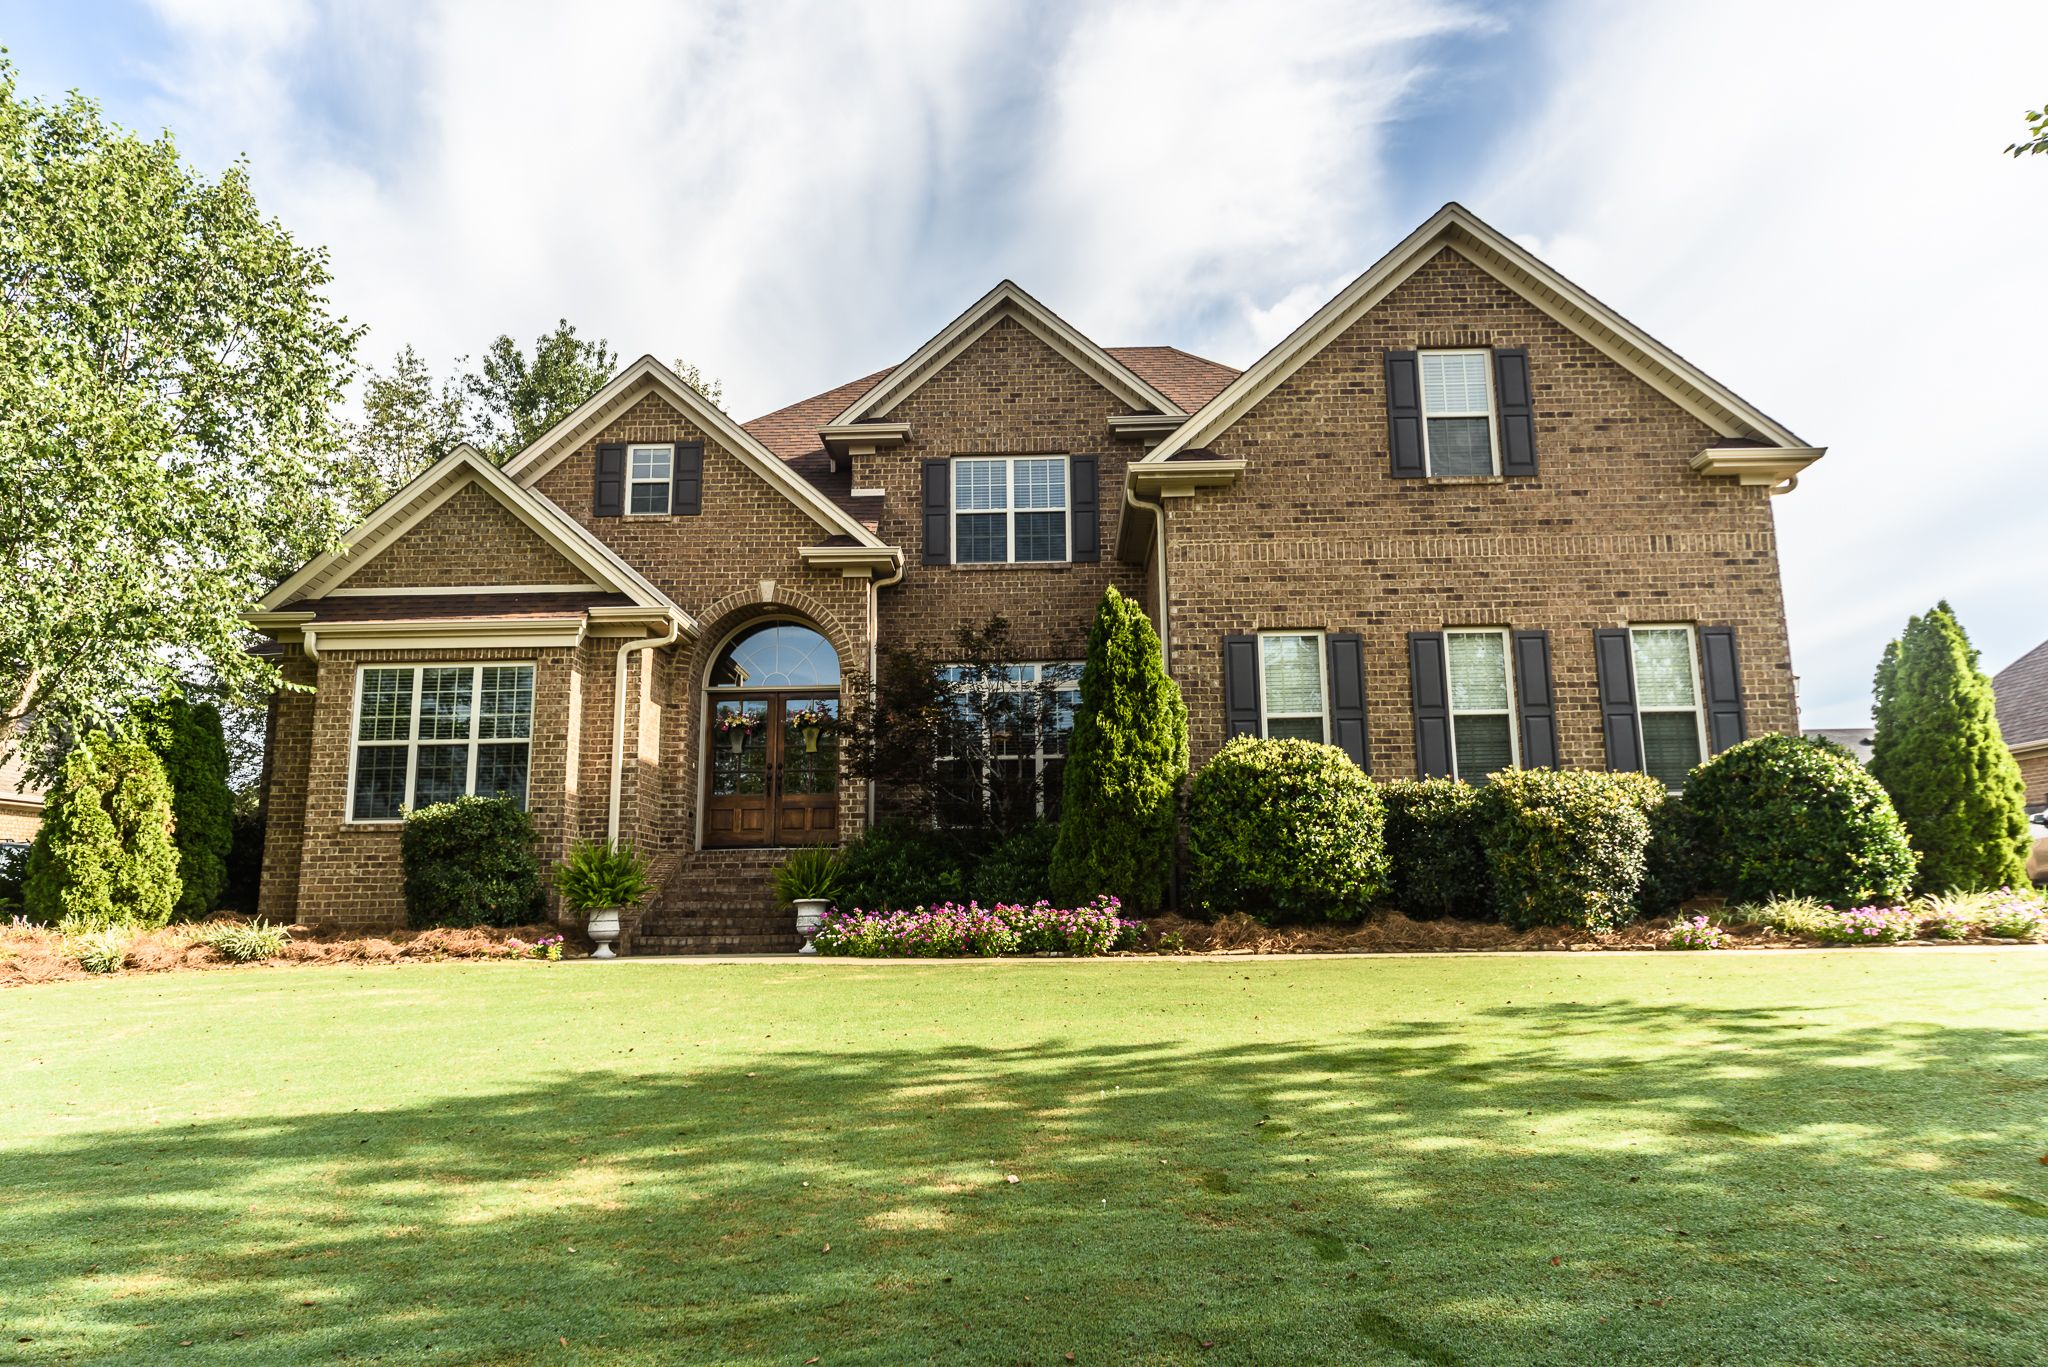 1810 Brentwood & 1810 Brentwood For Sale - Muscle Shoals AL | Trulia